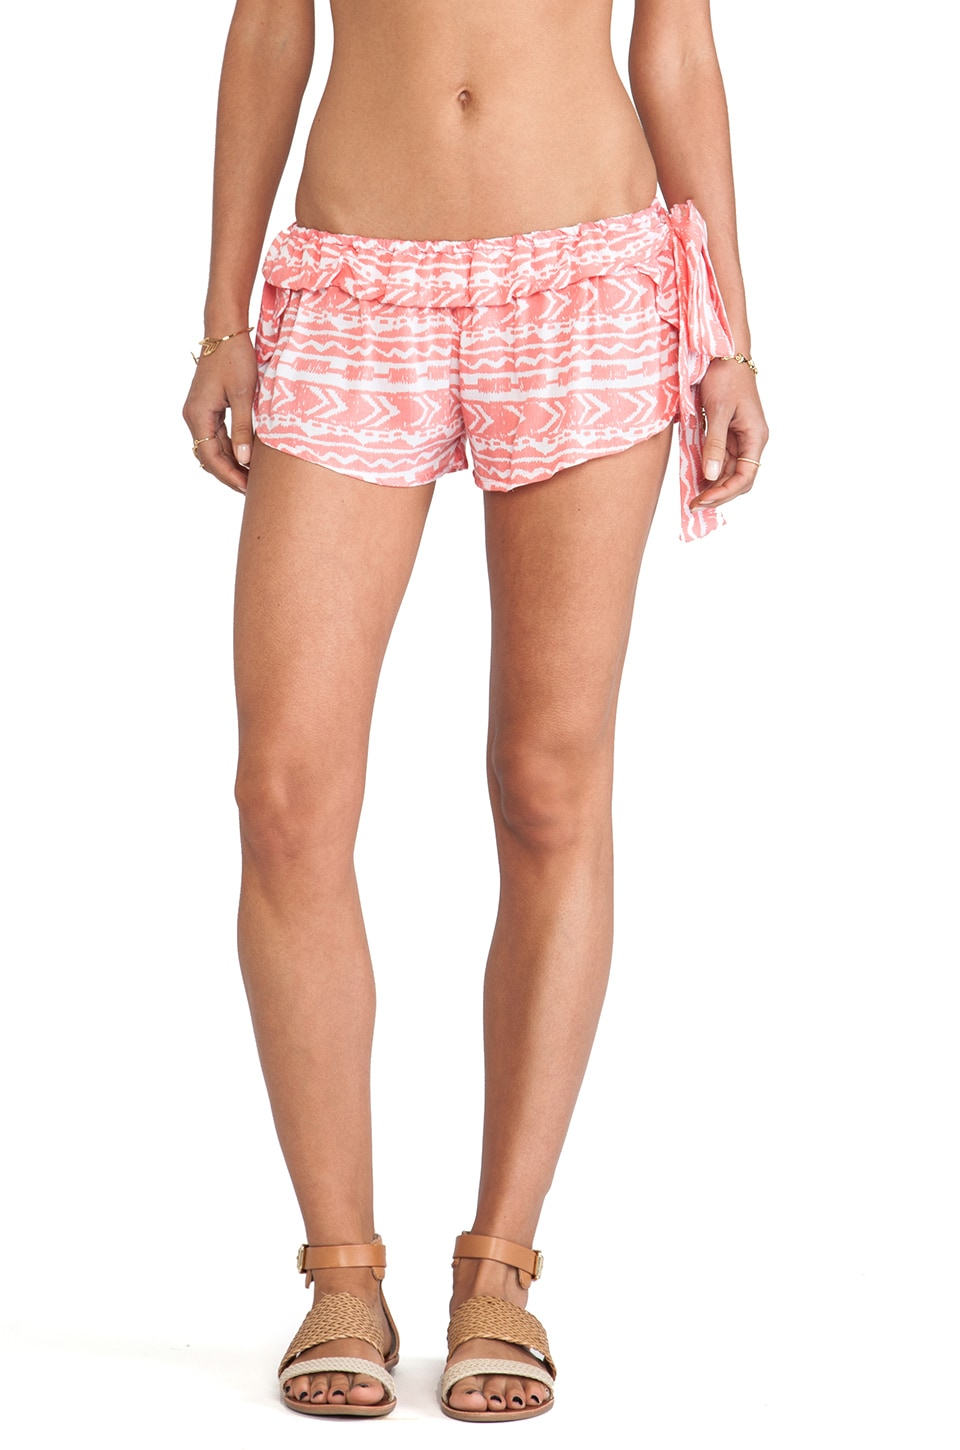 Tiare Hawaii Bryon Bay Shorts in Coral Totem Print